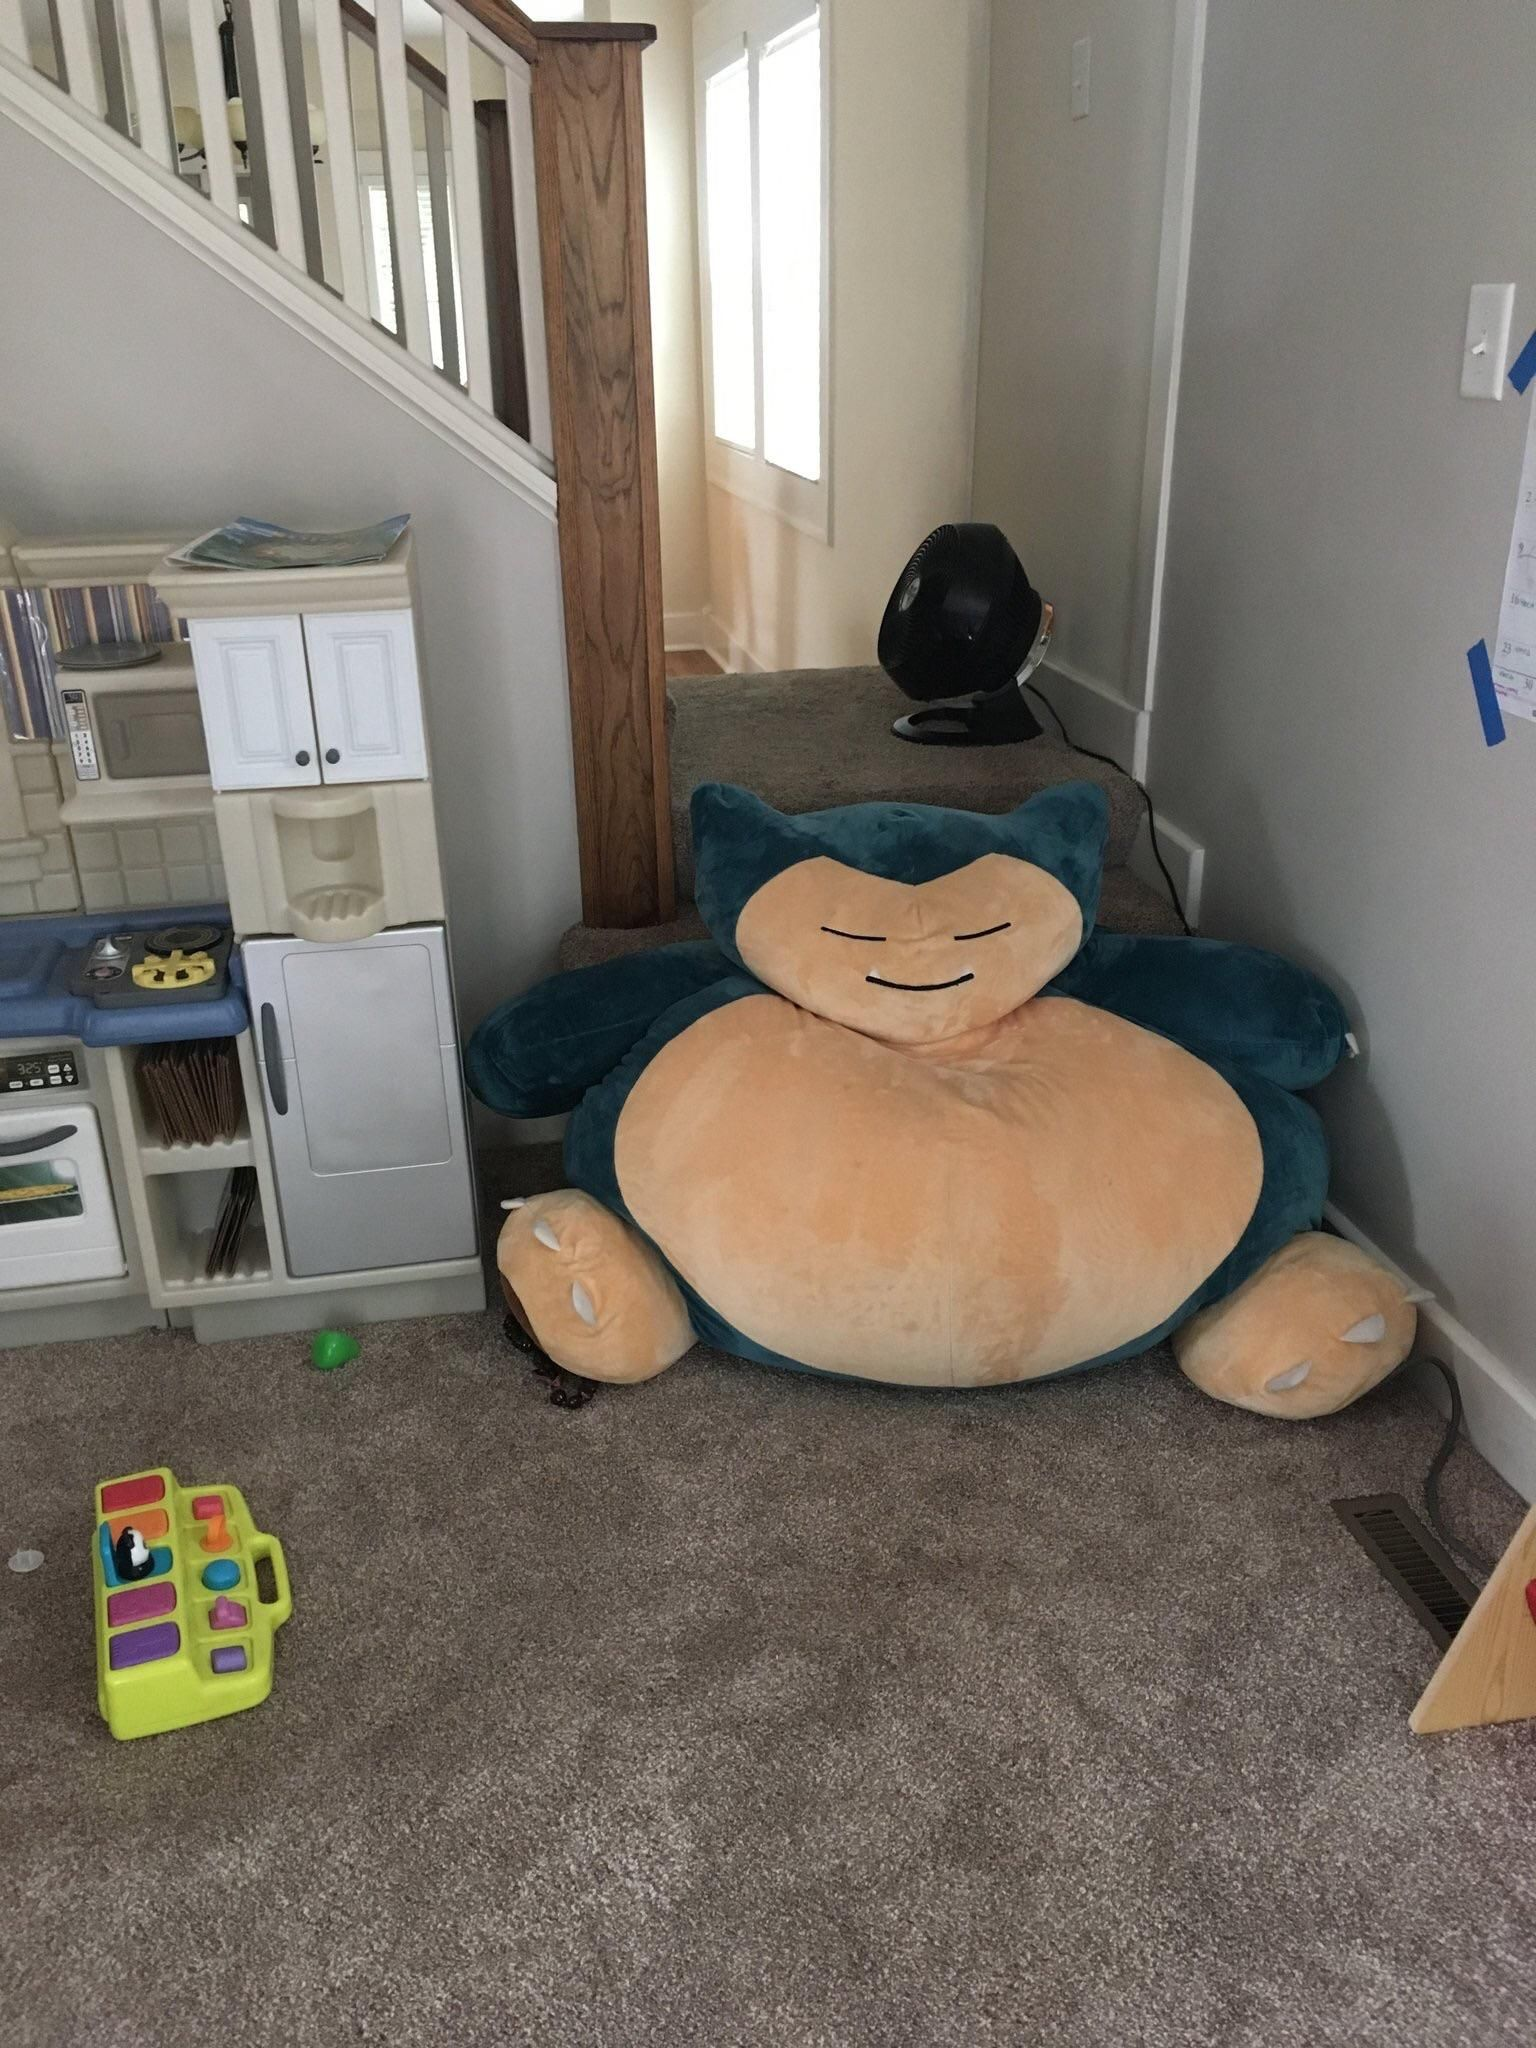 At my house we use snorlax as a baby gate. Let's just hope the baby never finds the Pokéflute